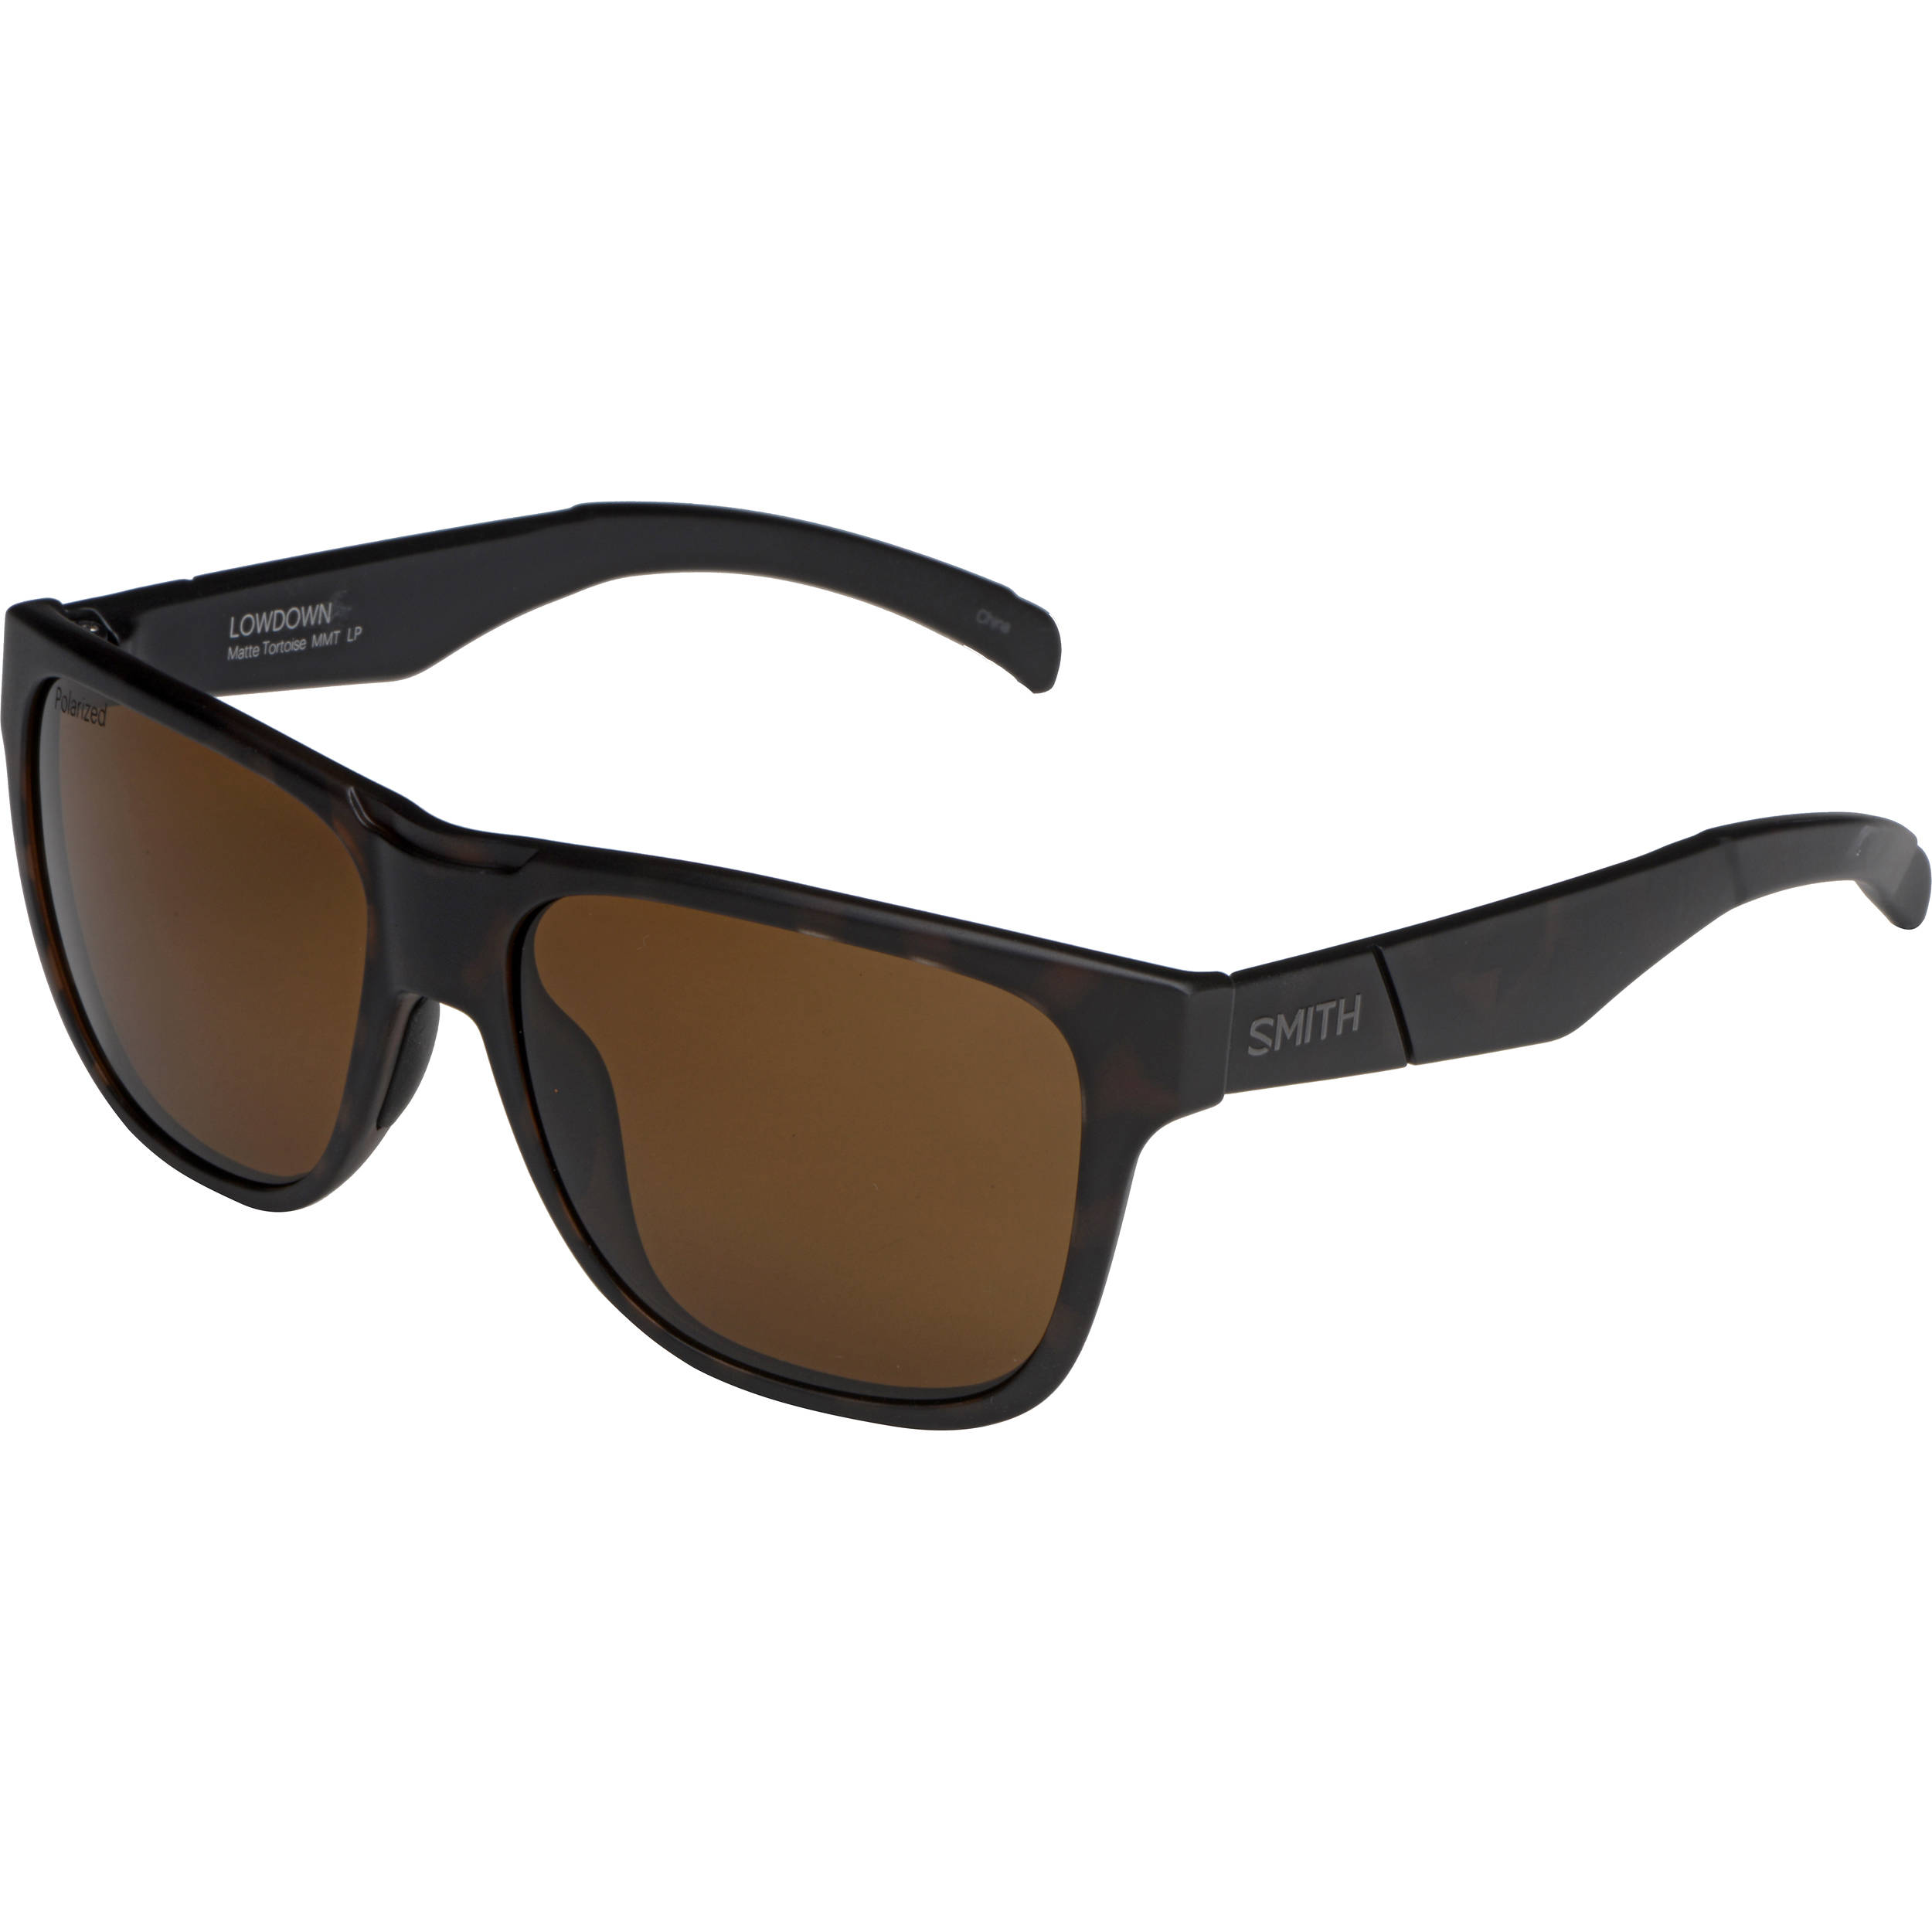 9ab652c492 Smith Optics Lowdown Sunglasses with Polarized Brown Lenses (Matte Tortoise  Frames)